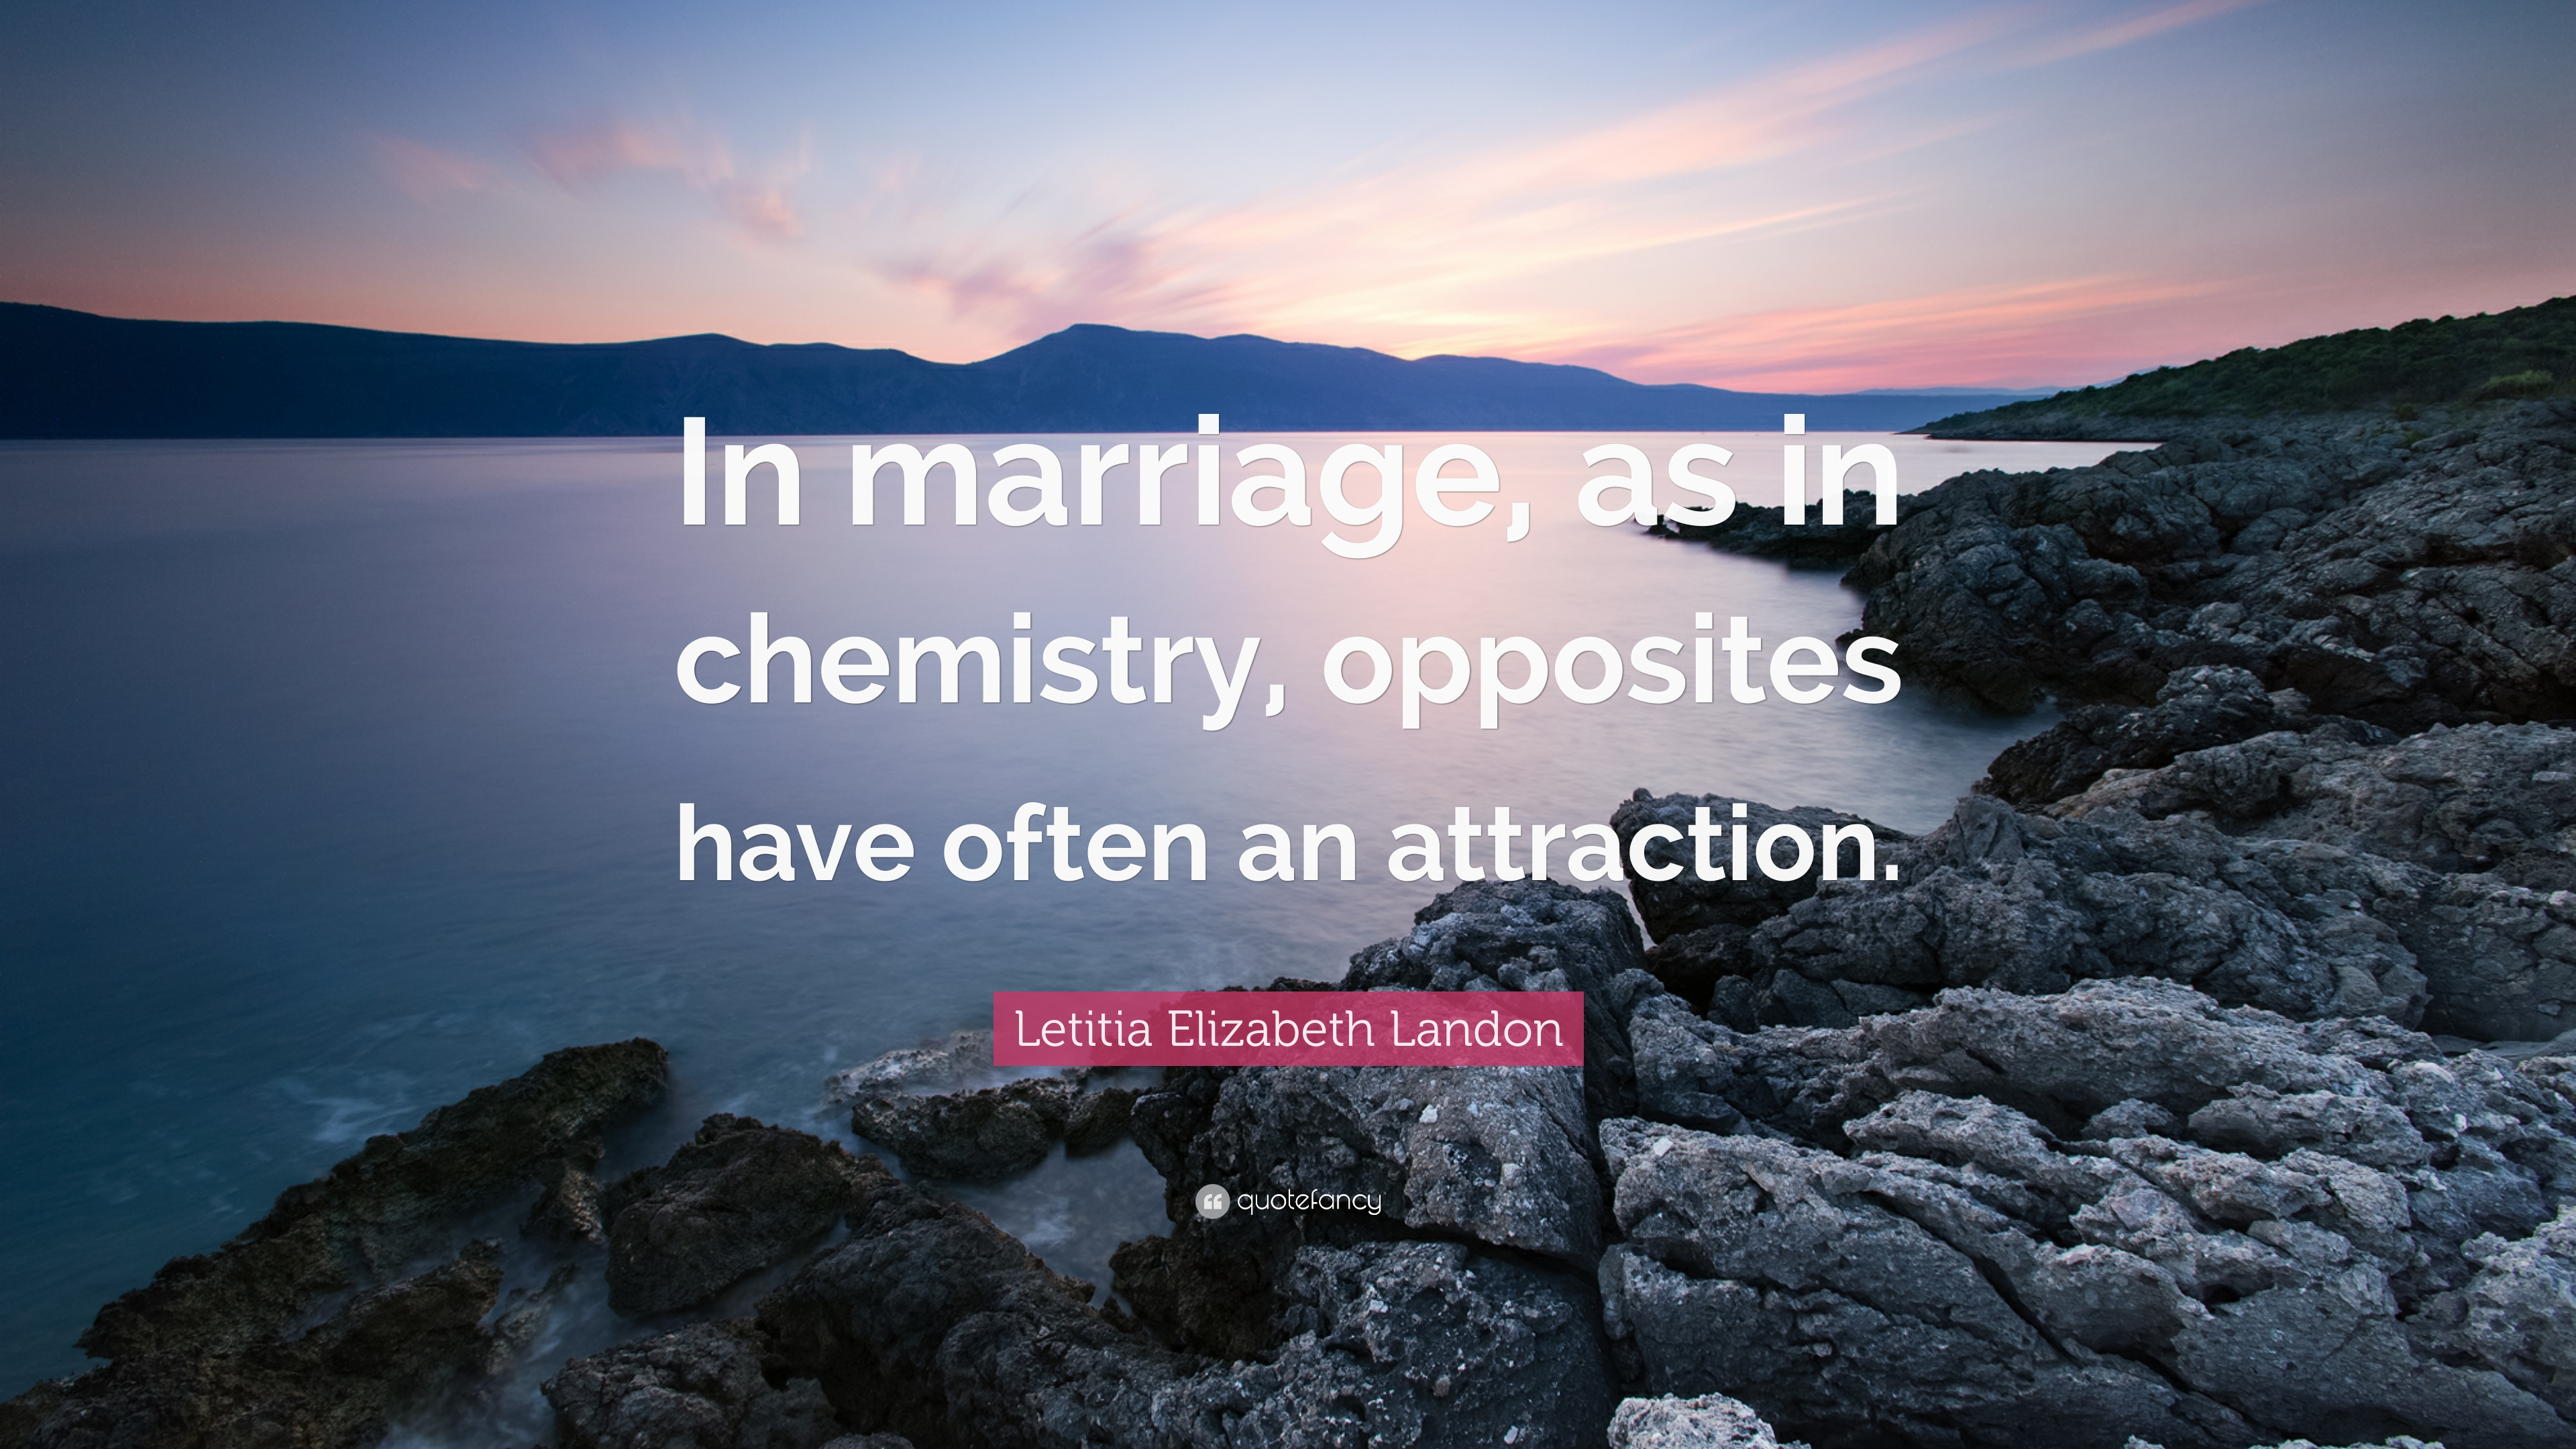 No chemistry in marriage